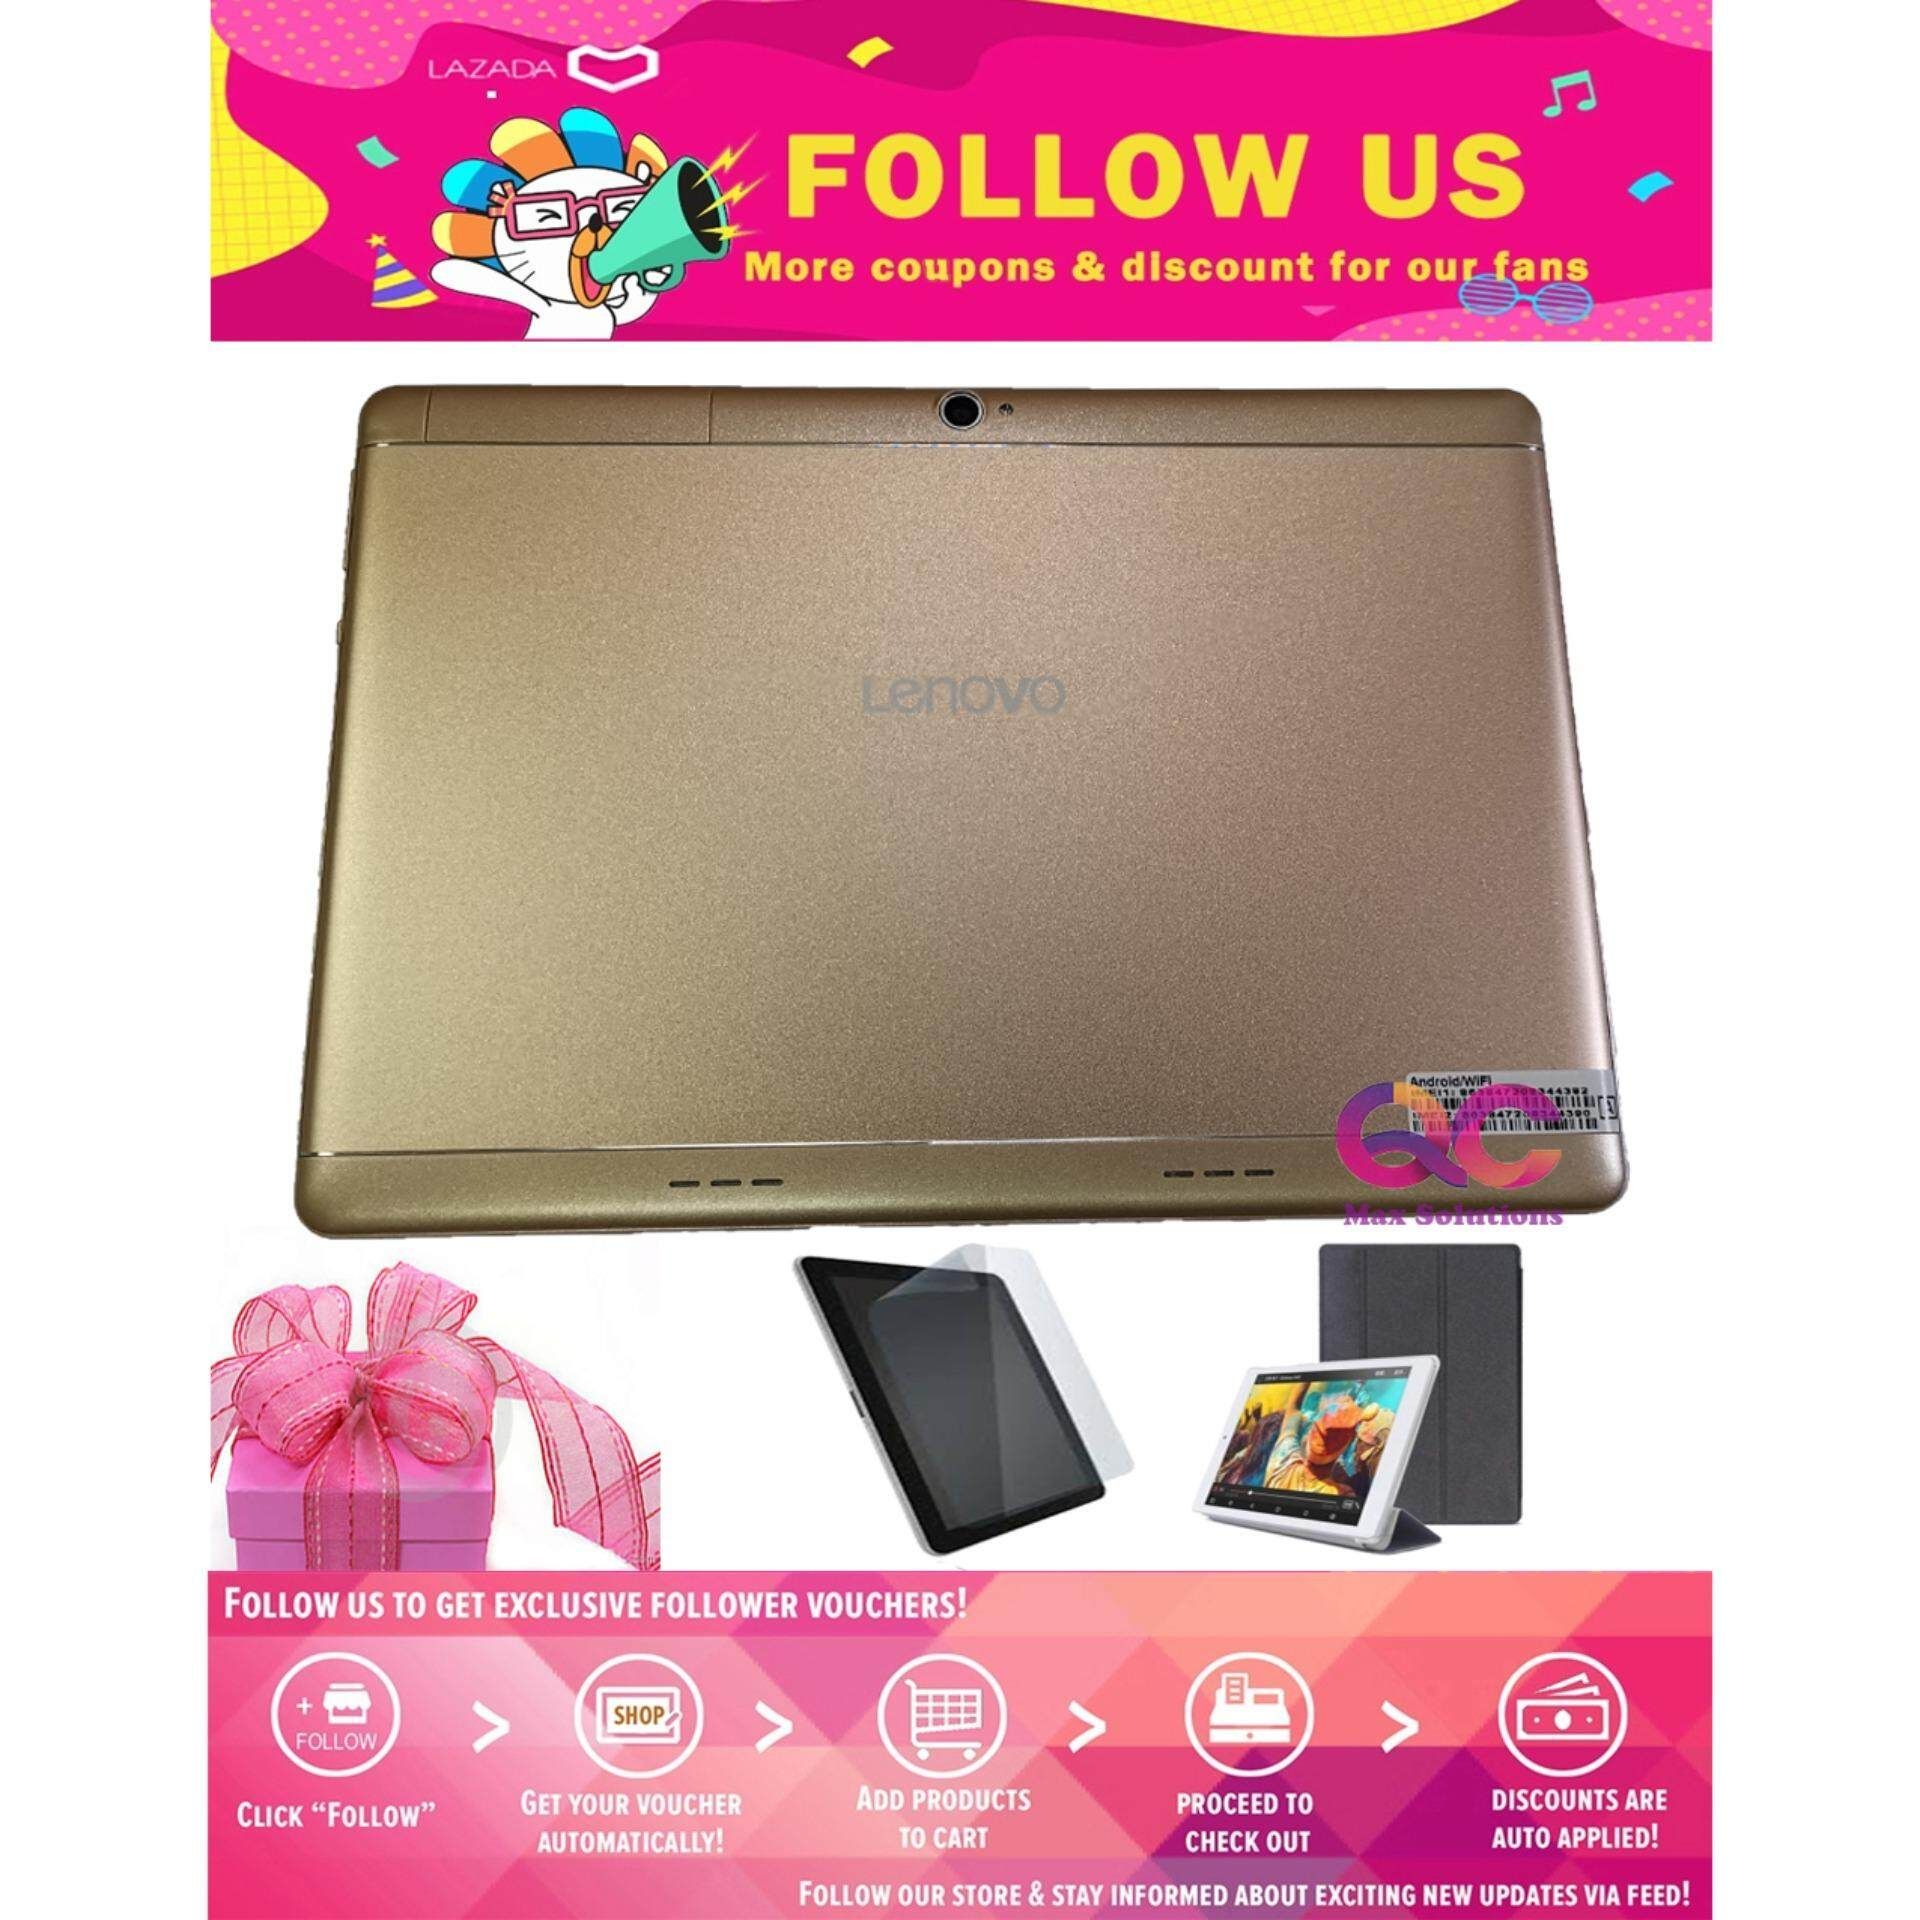 Lowest Pricel!! Lenovo Tab 3 Tablet Display Screen 10.1' Dual Sim Cards & Memory Card Slots Support Wi-Fi/Bluetooth/Hotspot/Data Connection (2GB RAM + 16GB ROM) FREE Screen Protector + Flip case